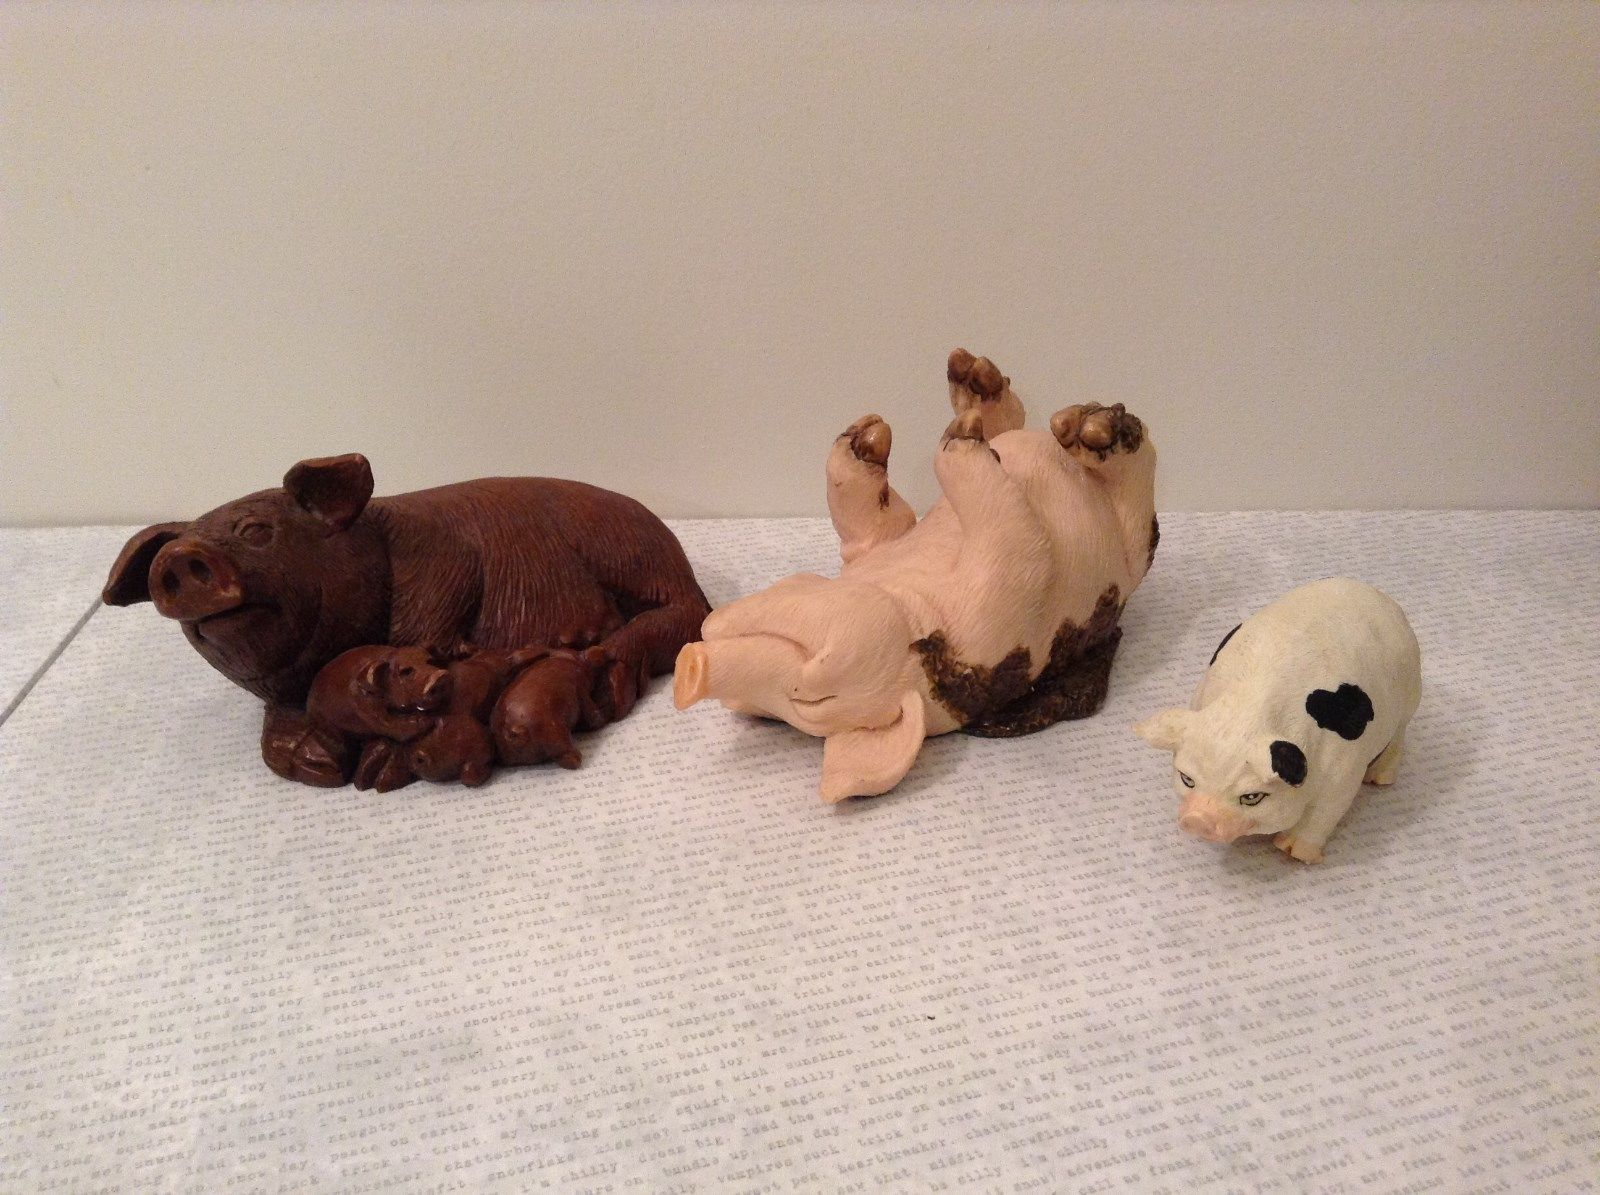 Set of Three Pig Figurines Brown Pink White Mother with Piglets Standing Laying